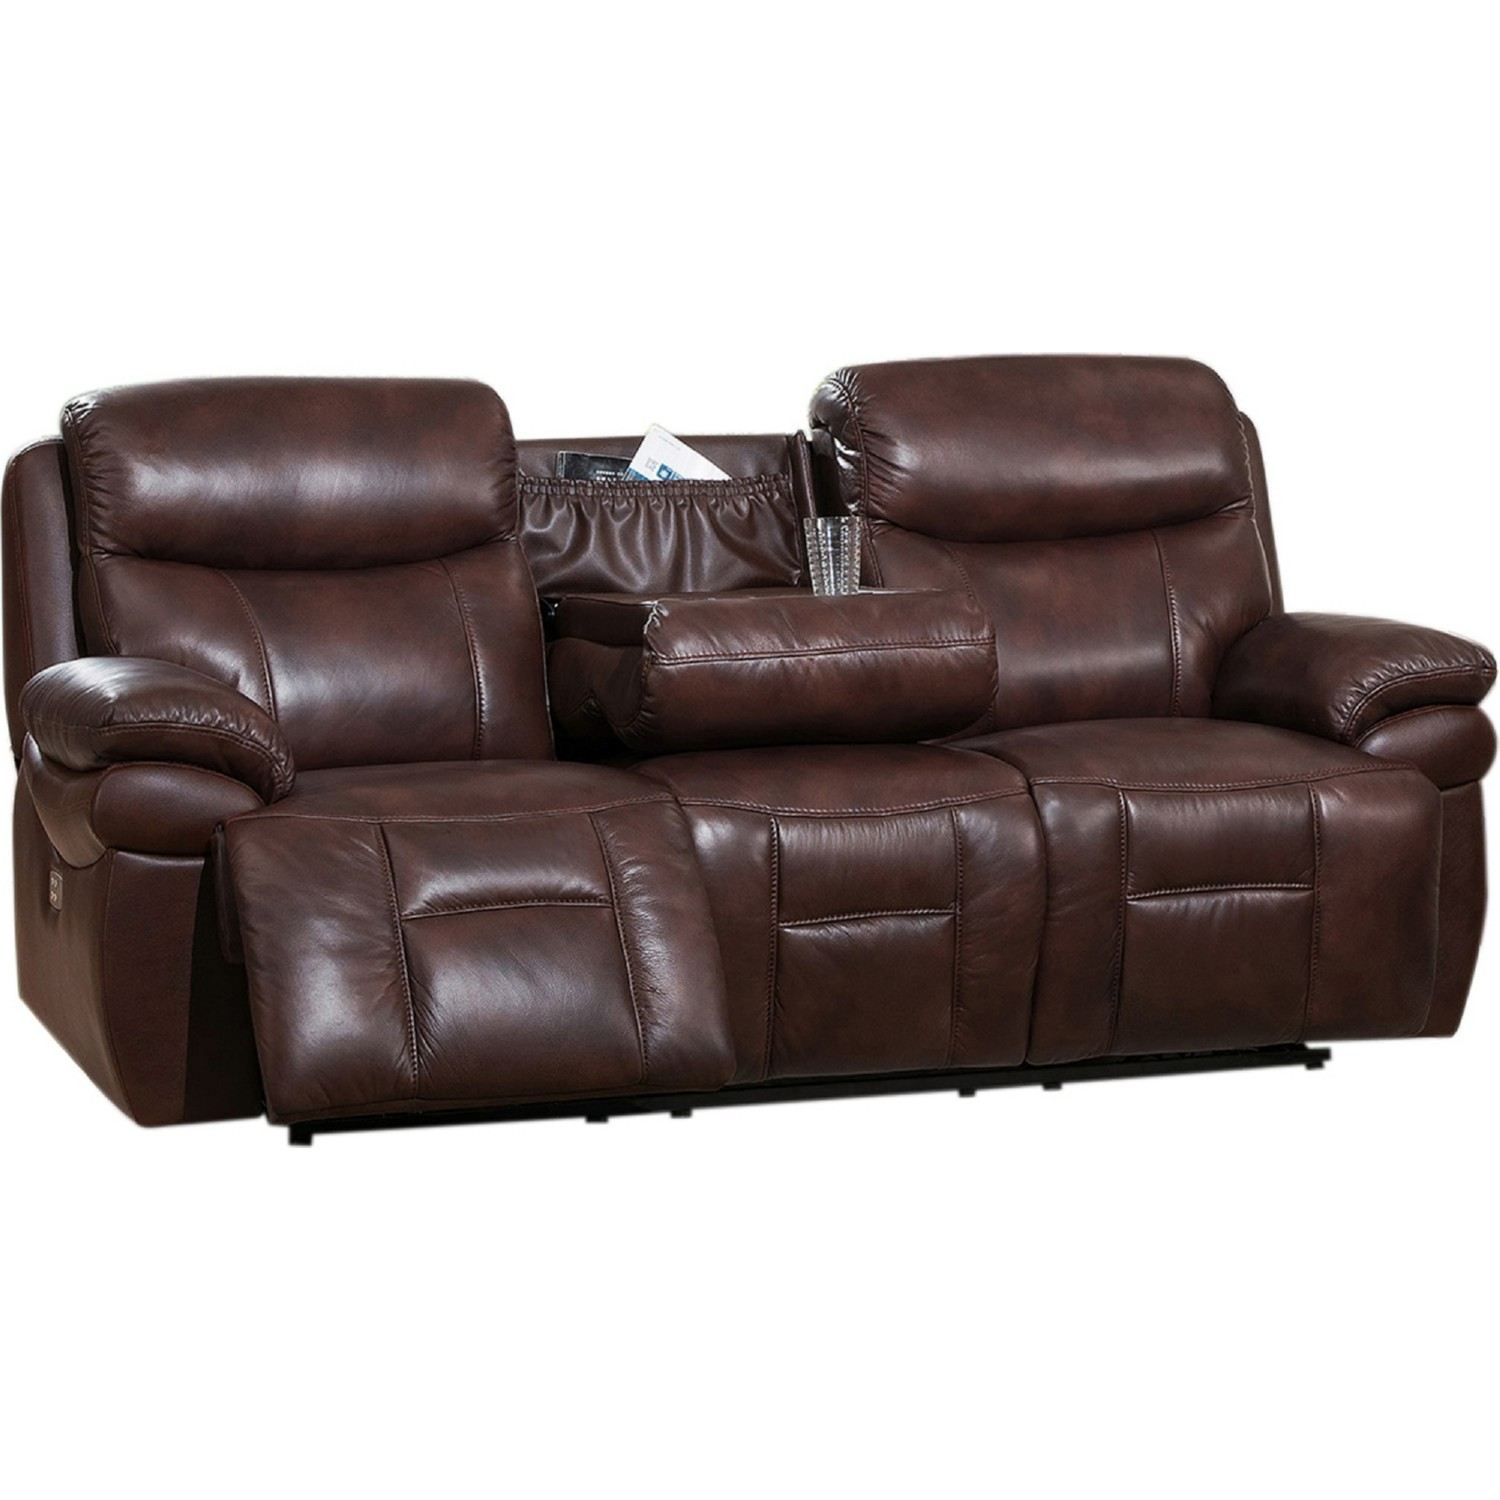 Recliner sofa with console new double recliner sofa with for Sofa console